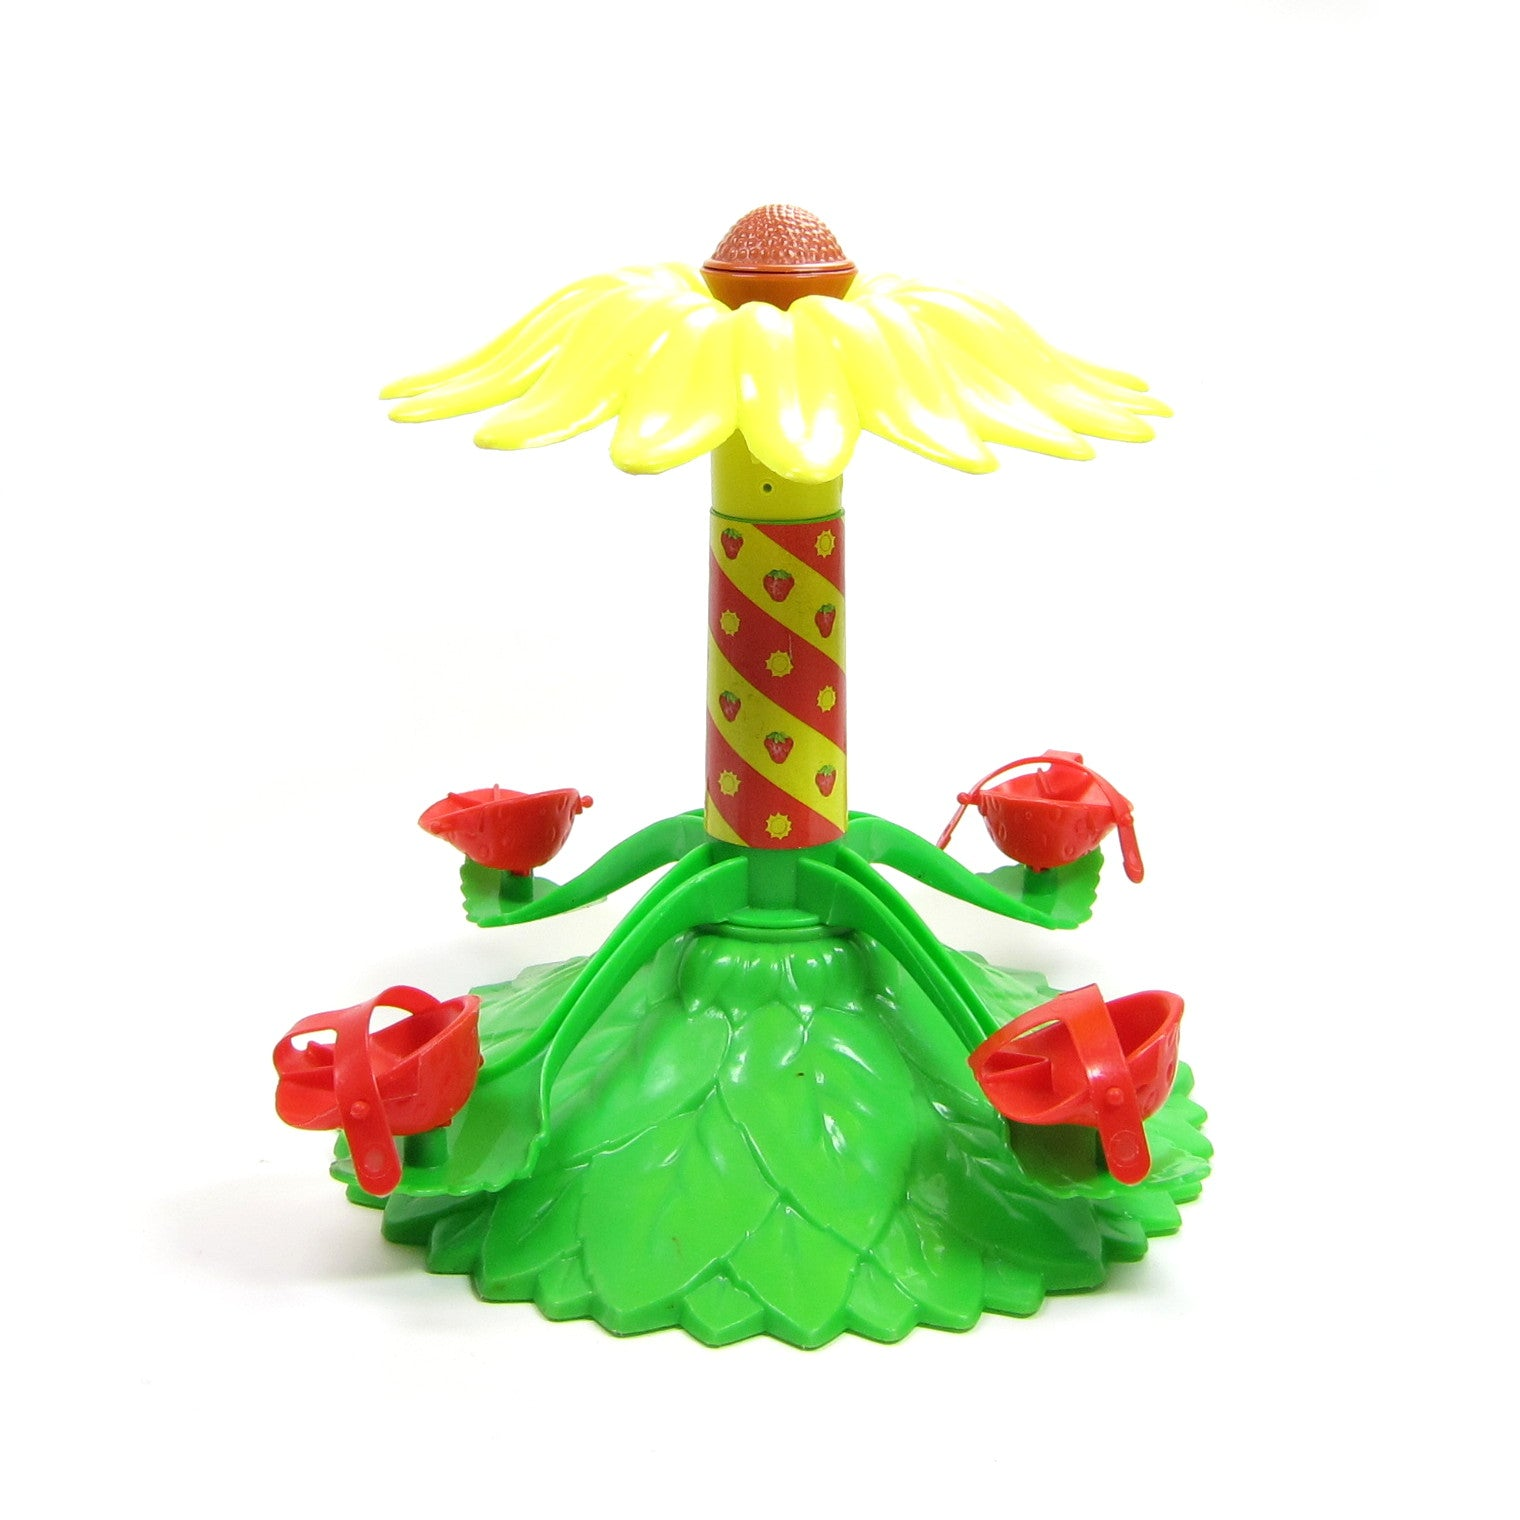 Strawberry Shortcake Carousel toy yellow flower